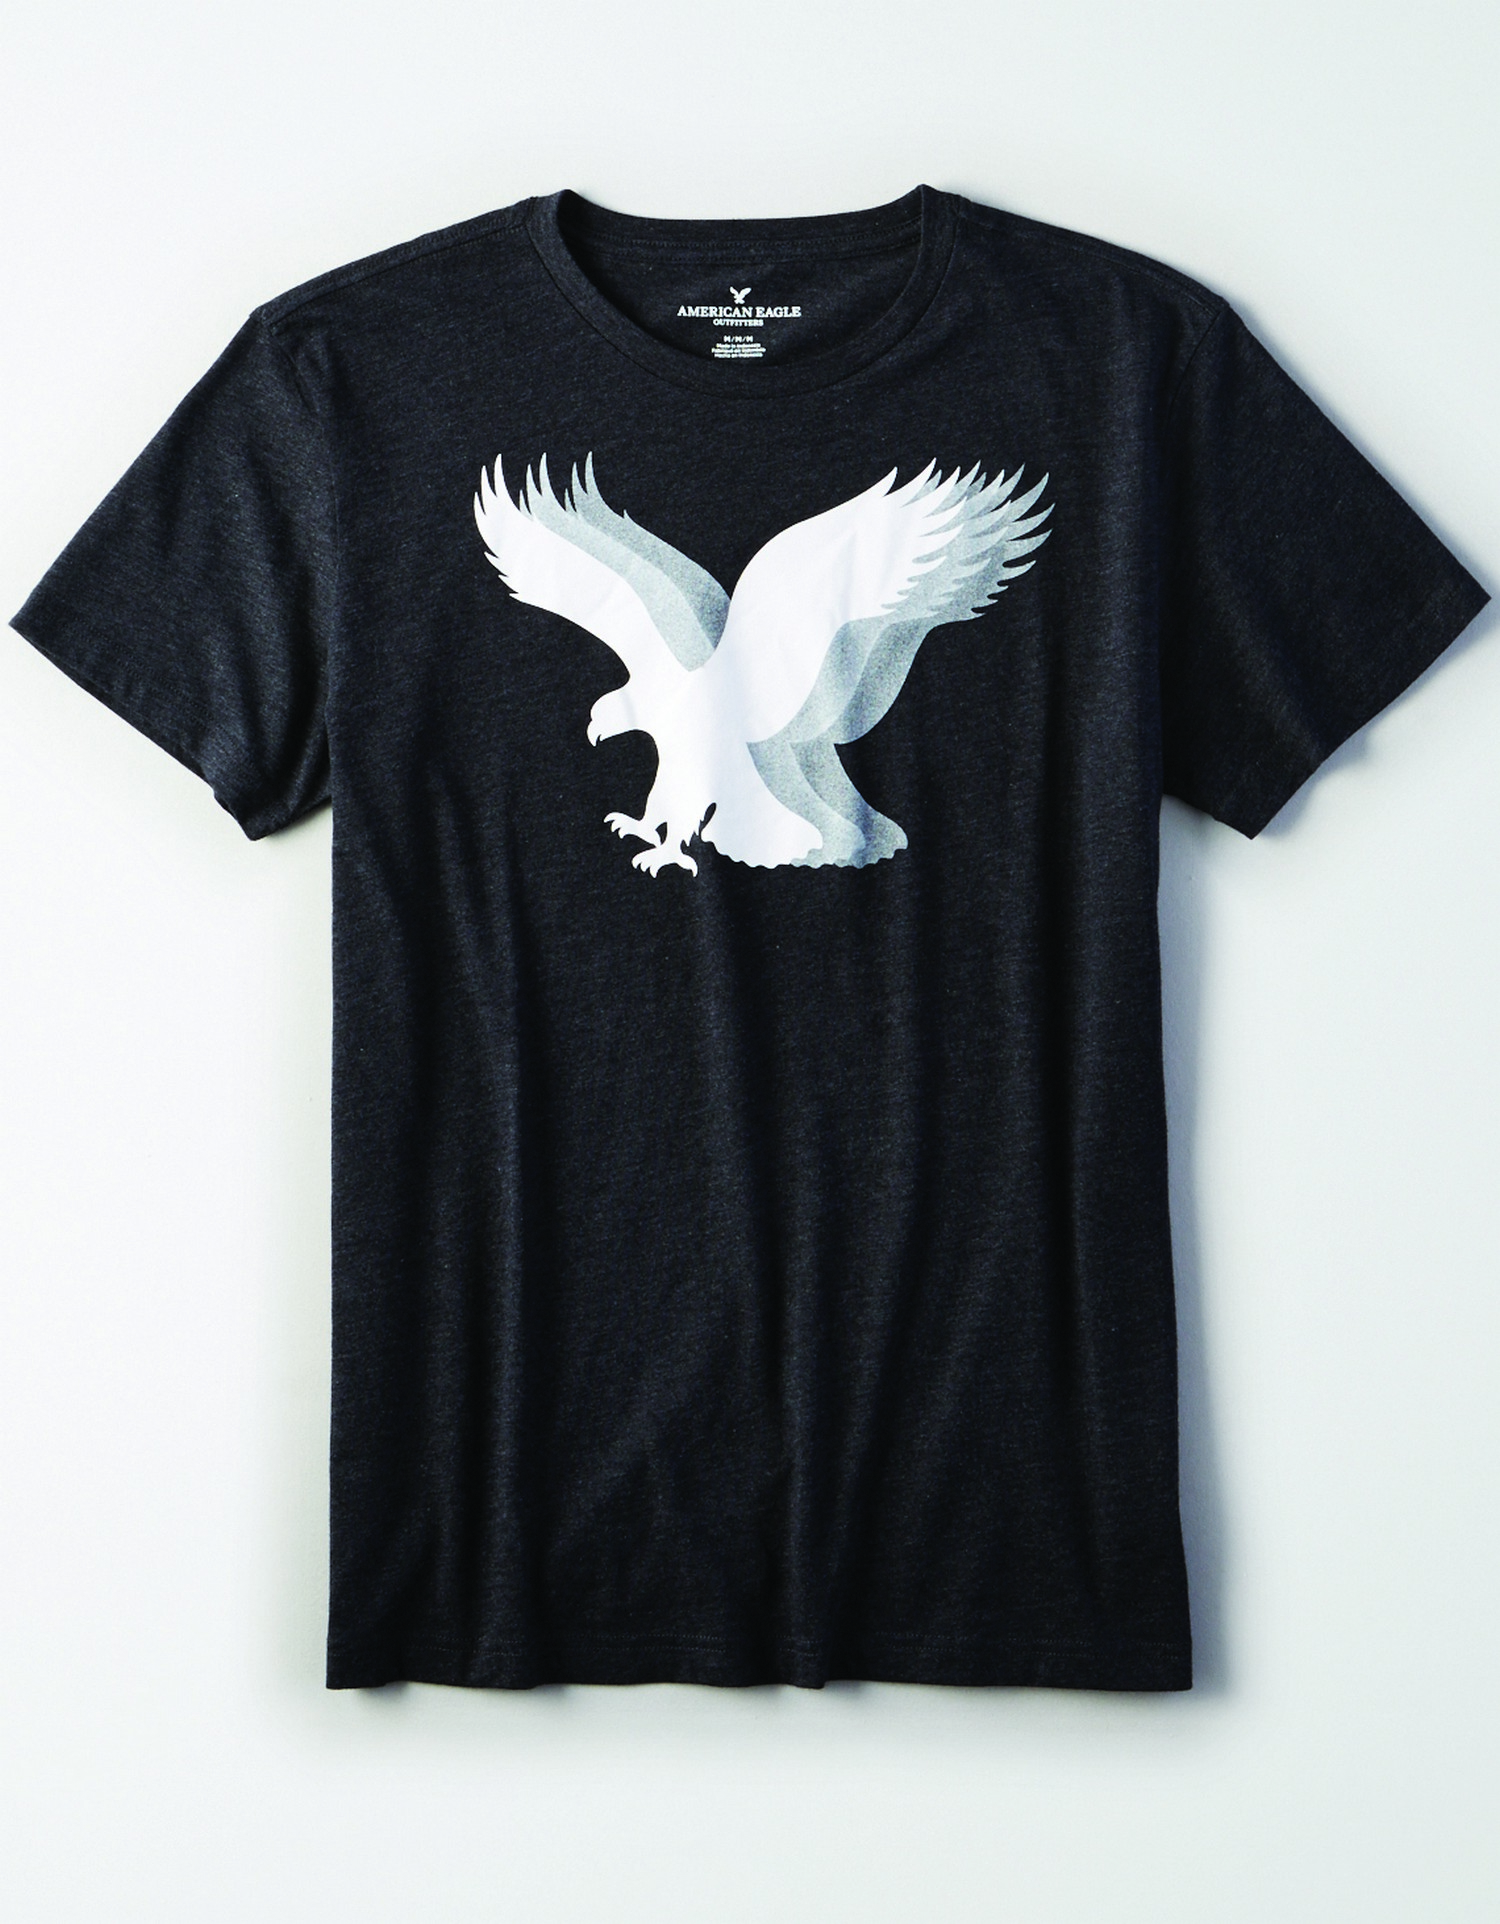 AE - M - Apparel - SS VALUE TEE - Charcoal Grey - chite and grey layered eagle graphic on chest JP *Tracked